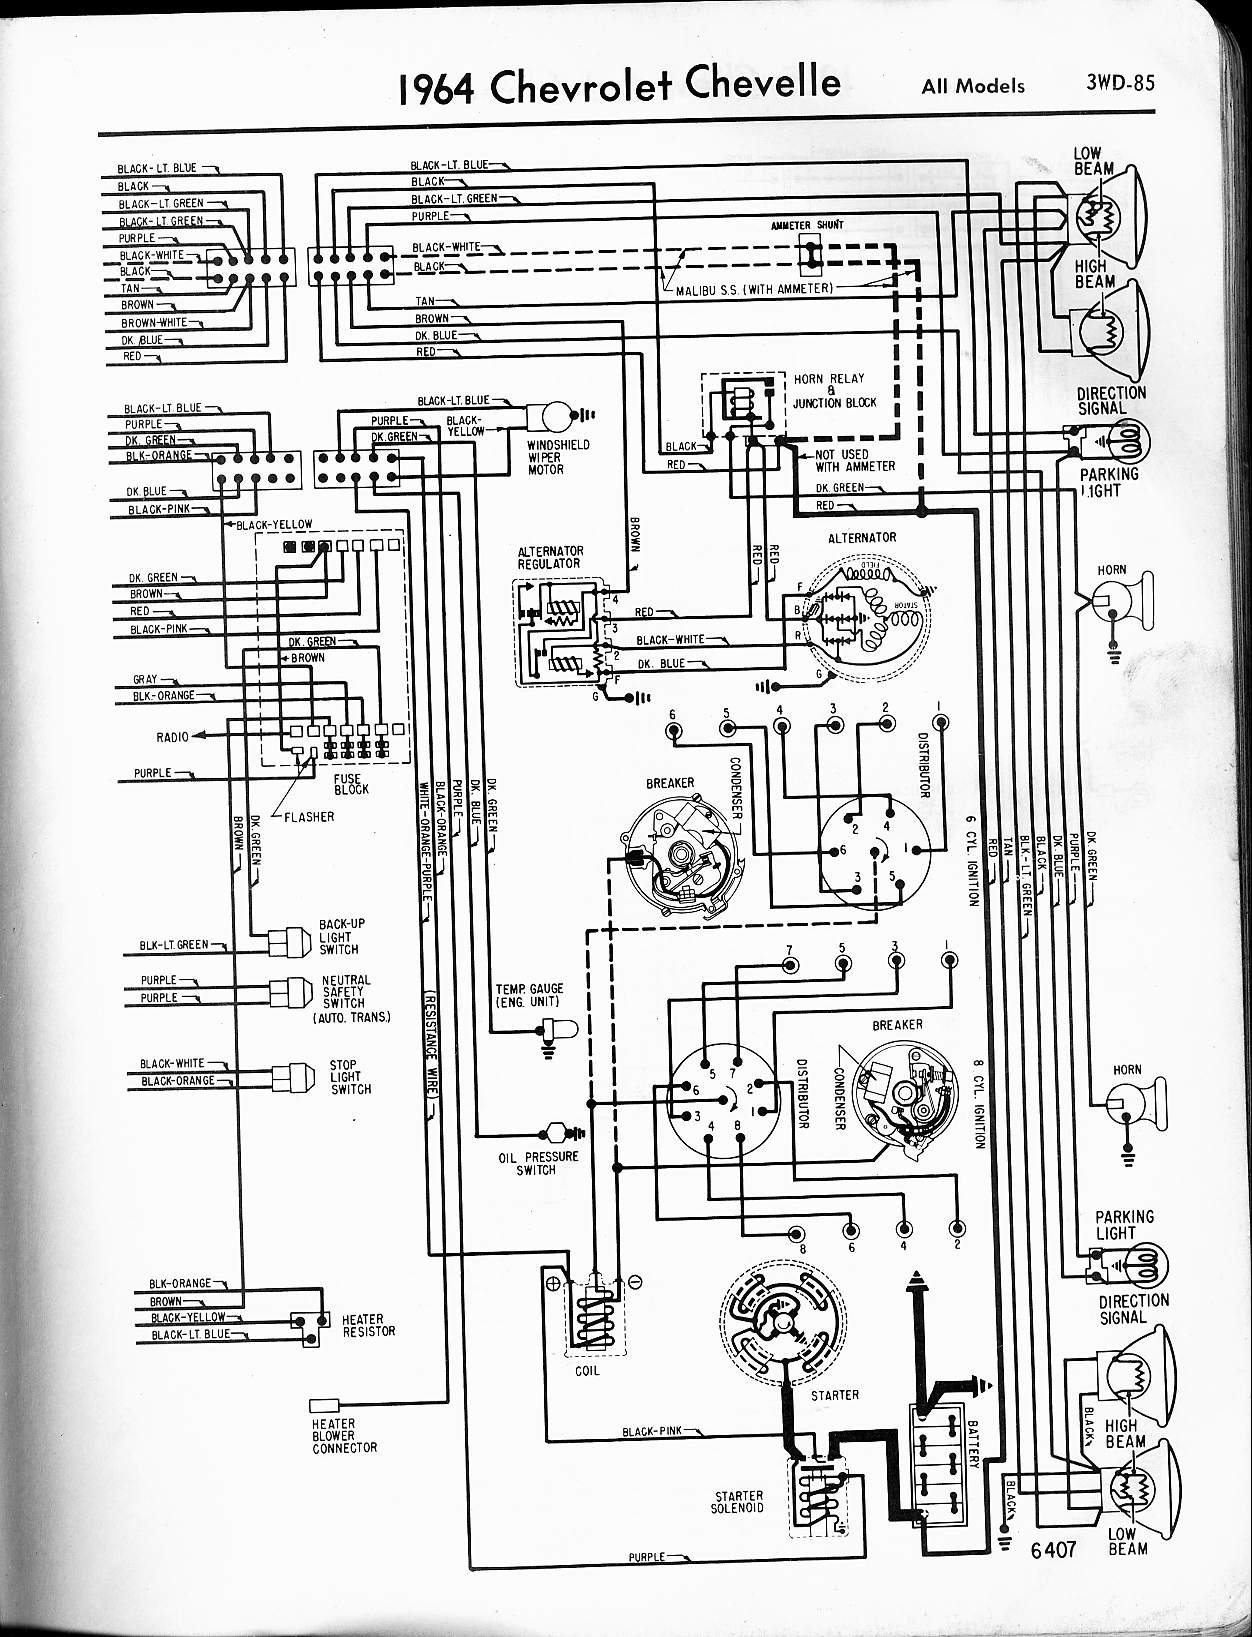 11905B 1968 Gto Ignition Switch Wiring Diagram | Wiring ResourcesWiring Resources